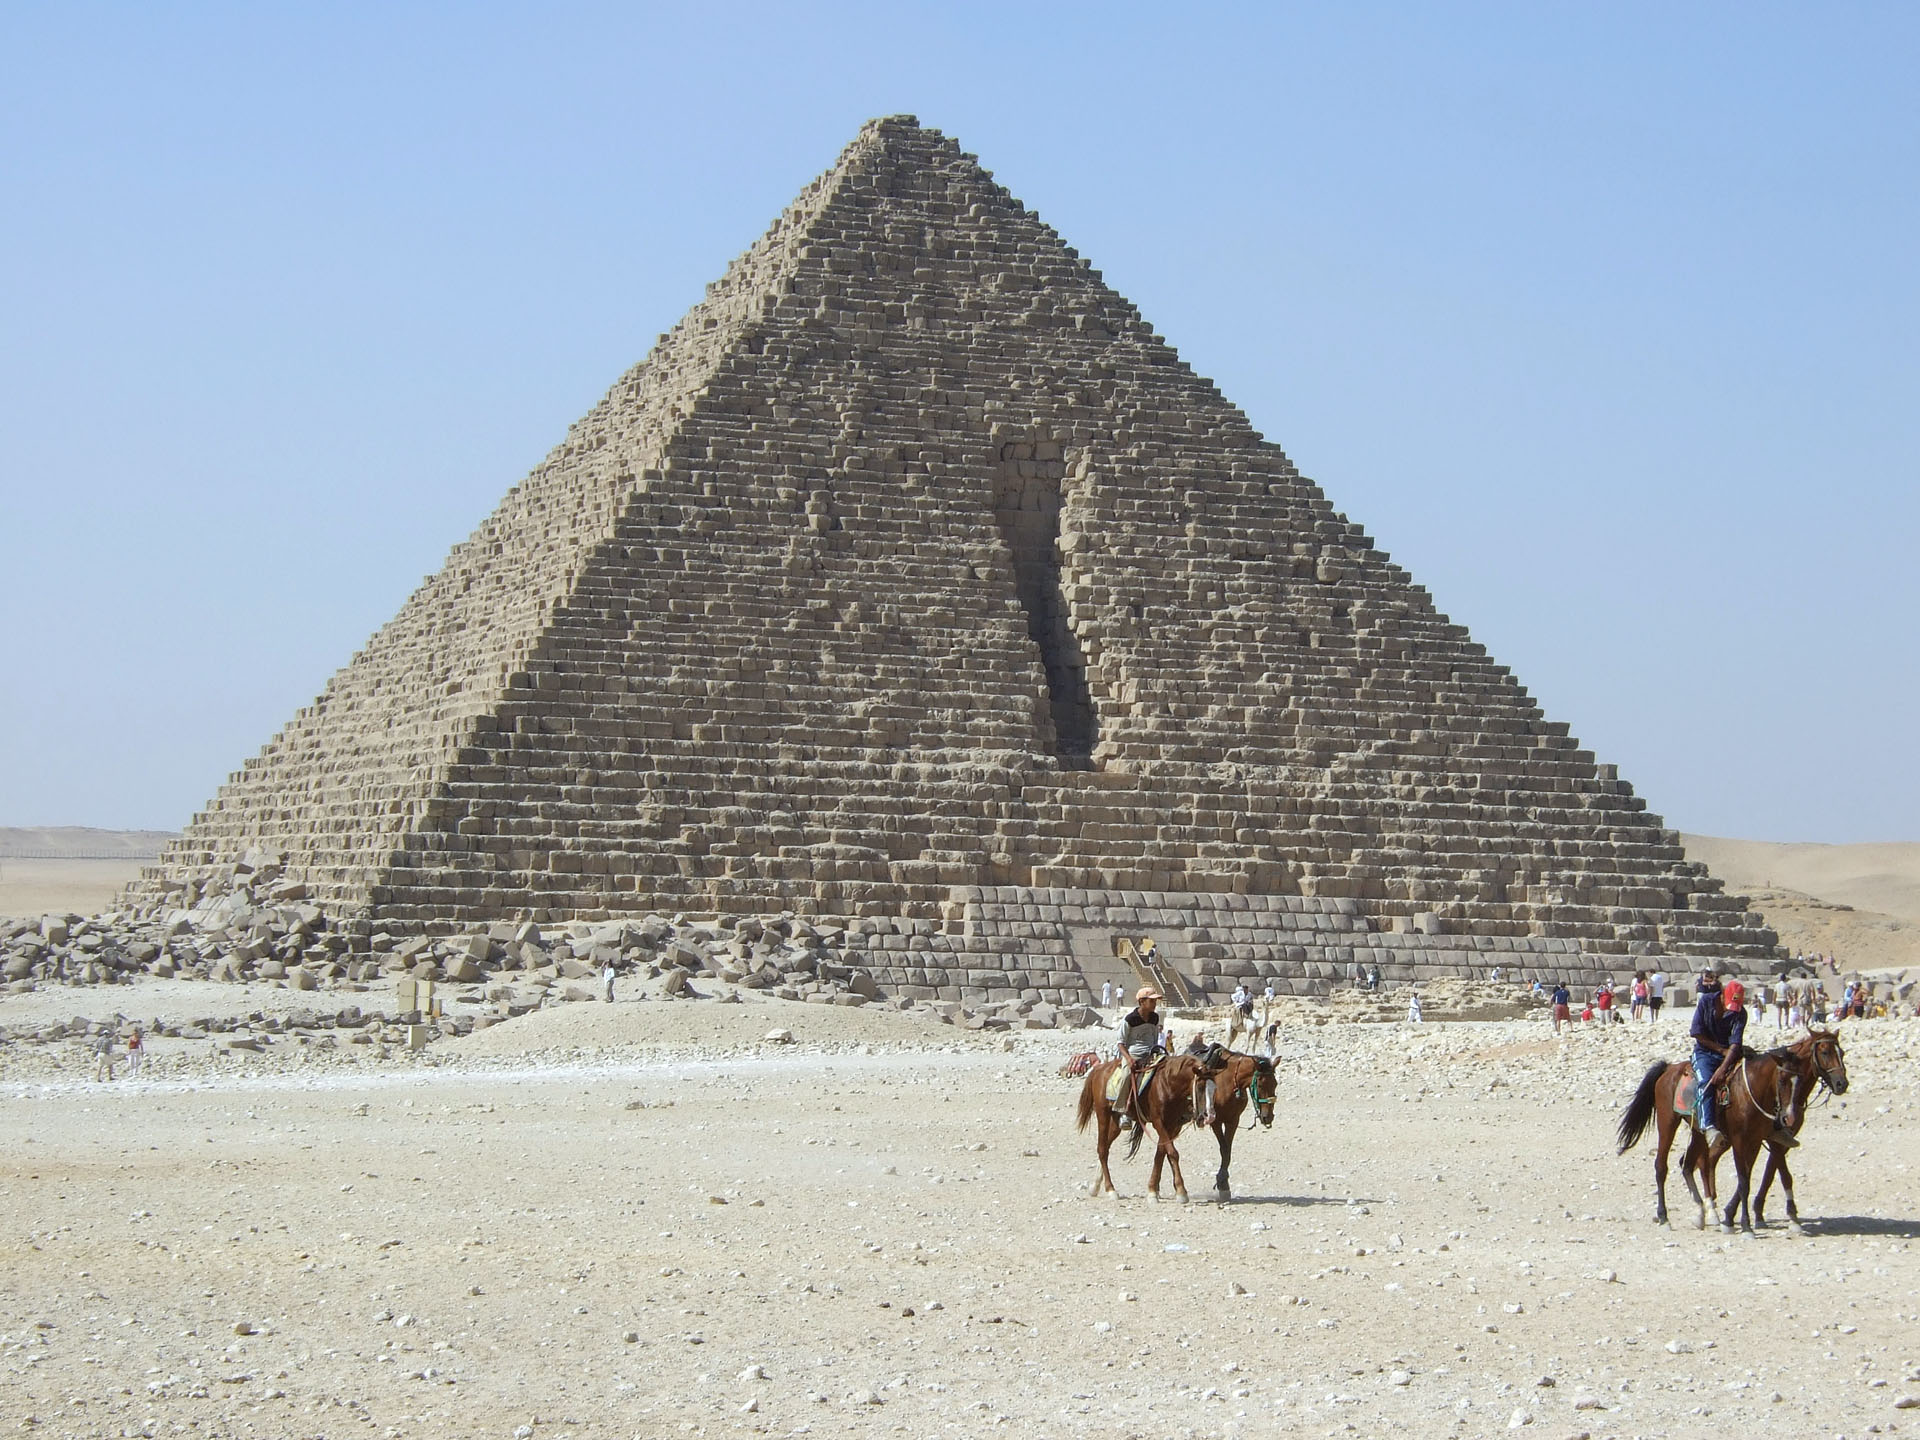 http://upload.wikimedia.org/wikipedia/commons/a/ab/Menkaures_Pyramid_Giza_Egypt.jpg